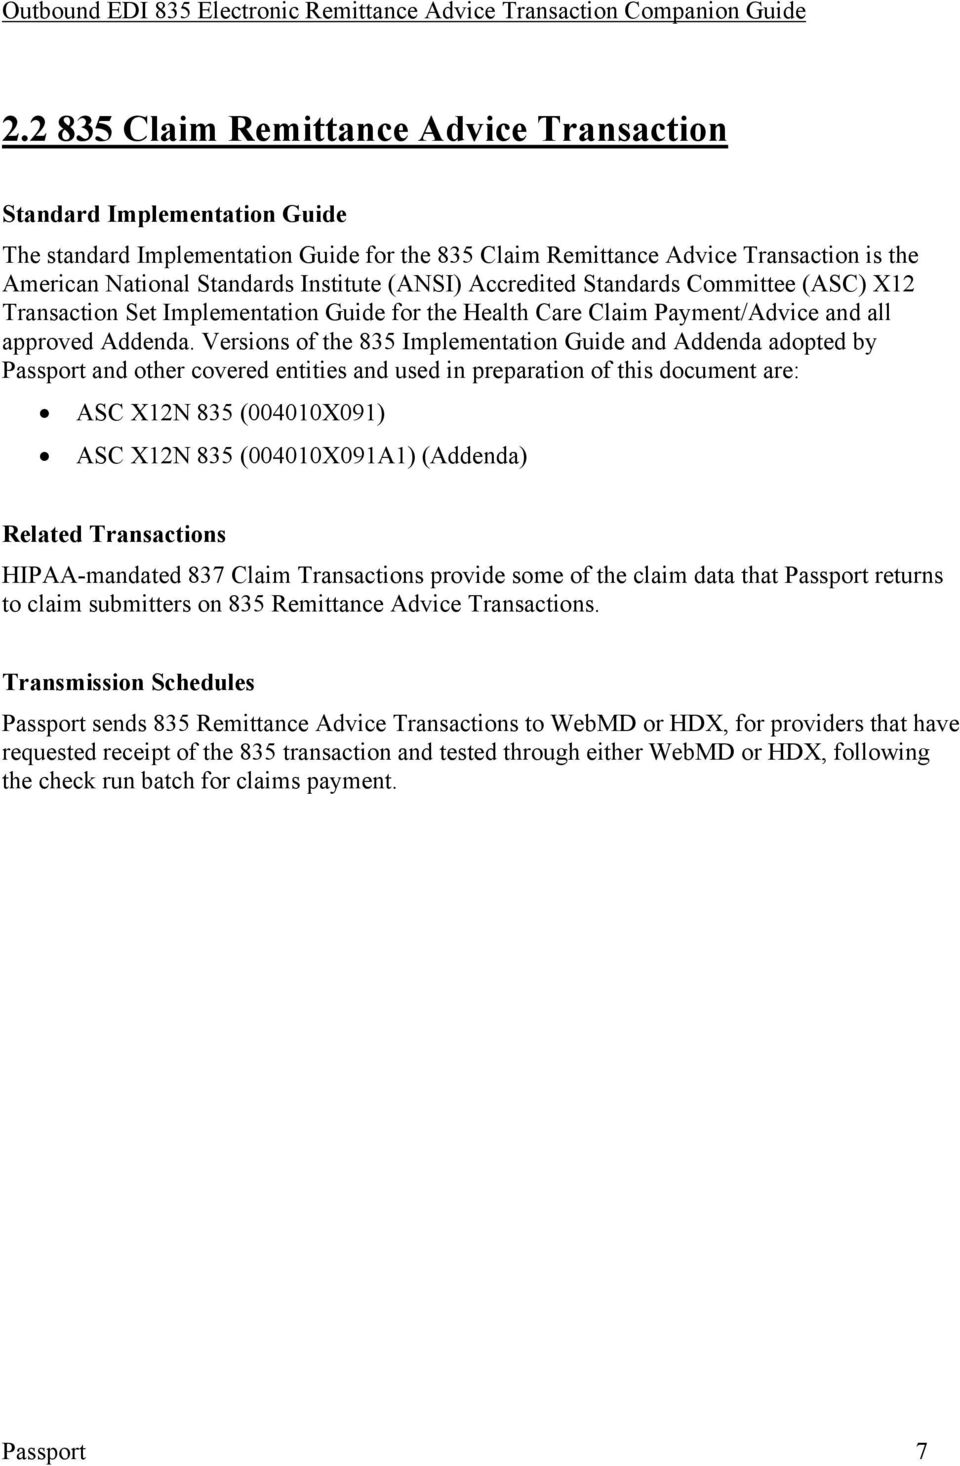 HIPAA - ASC X12N Outbound EDI 835 Electronic Remittance